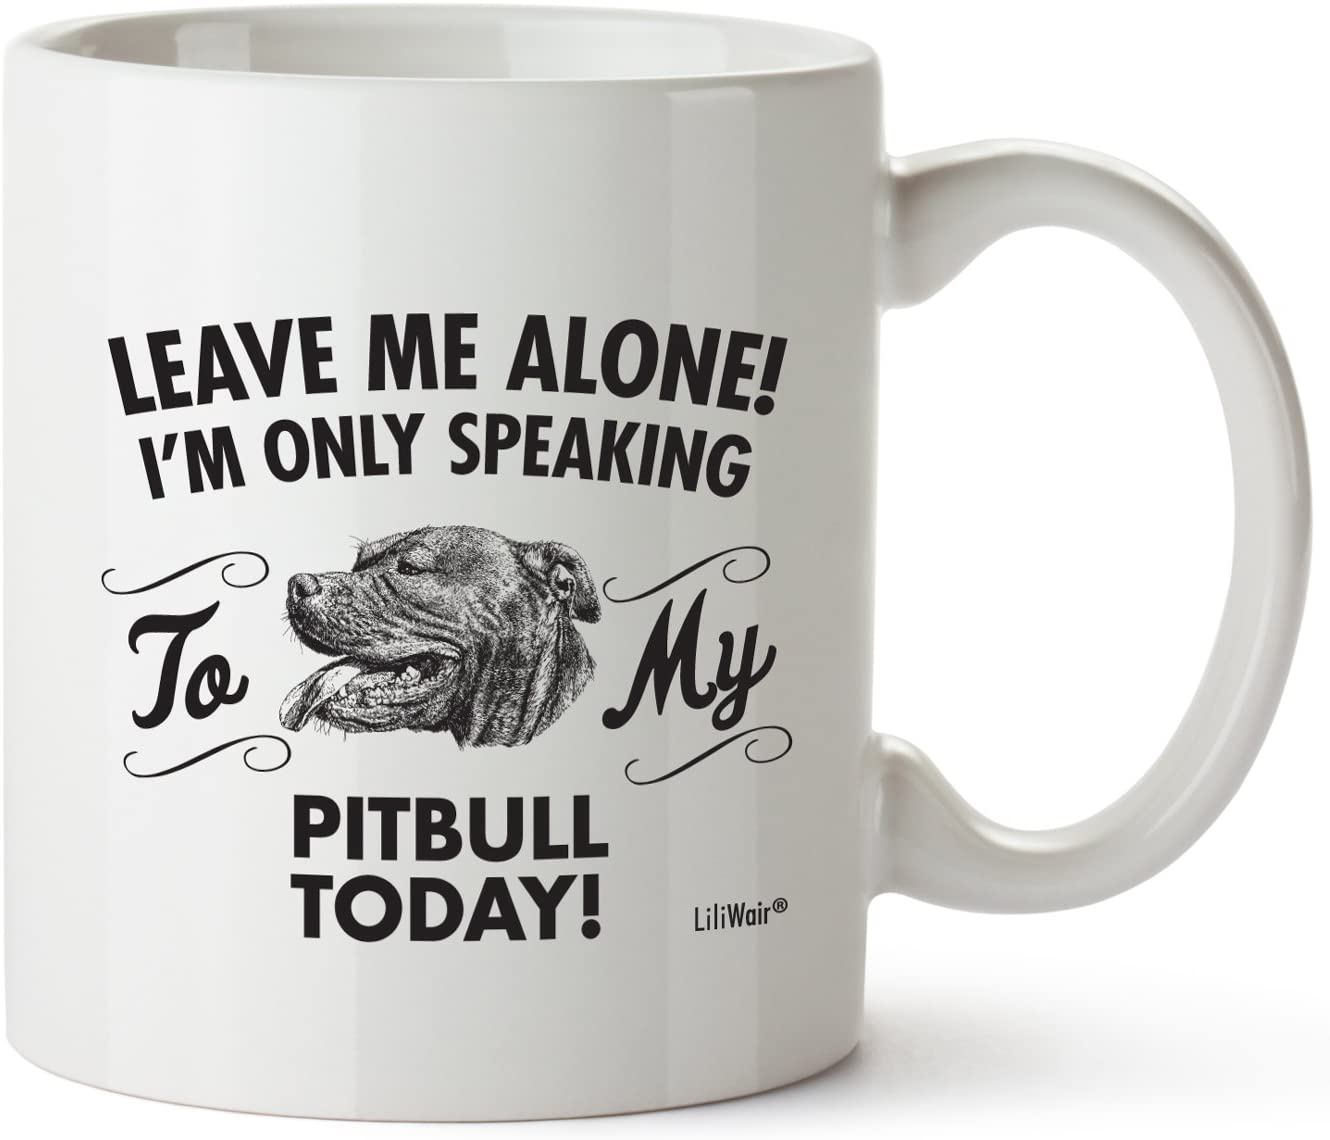 Pitbull Mom Gifts Mug For Christmas Women Men Dad Decor Lover Decorations Stuff I Love Pitbull Coffee Accessories Talking Art Apparel Funny Birthday Gift Home Supplies Products Dog Coffee Cup Mugs